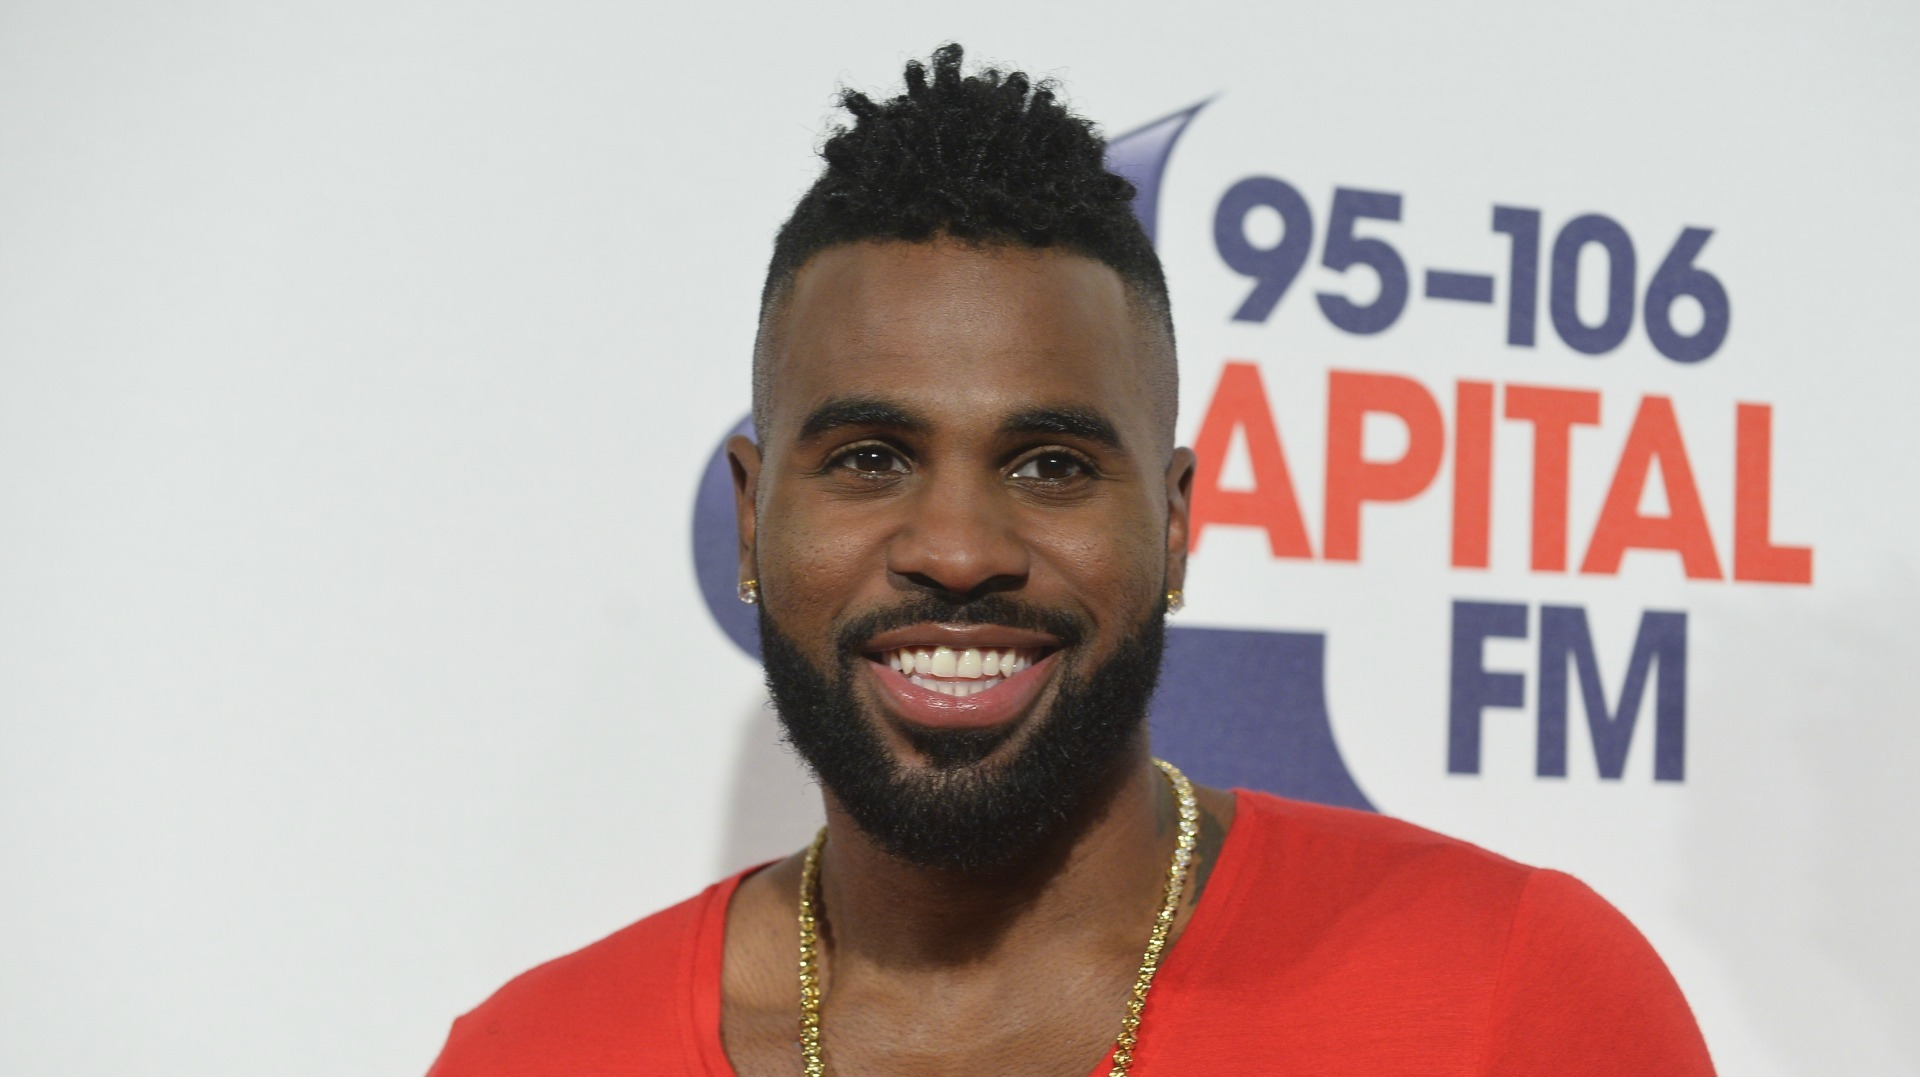 Jason Derulo 2017 Wallpaper